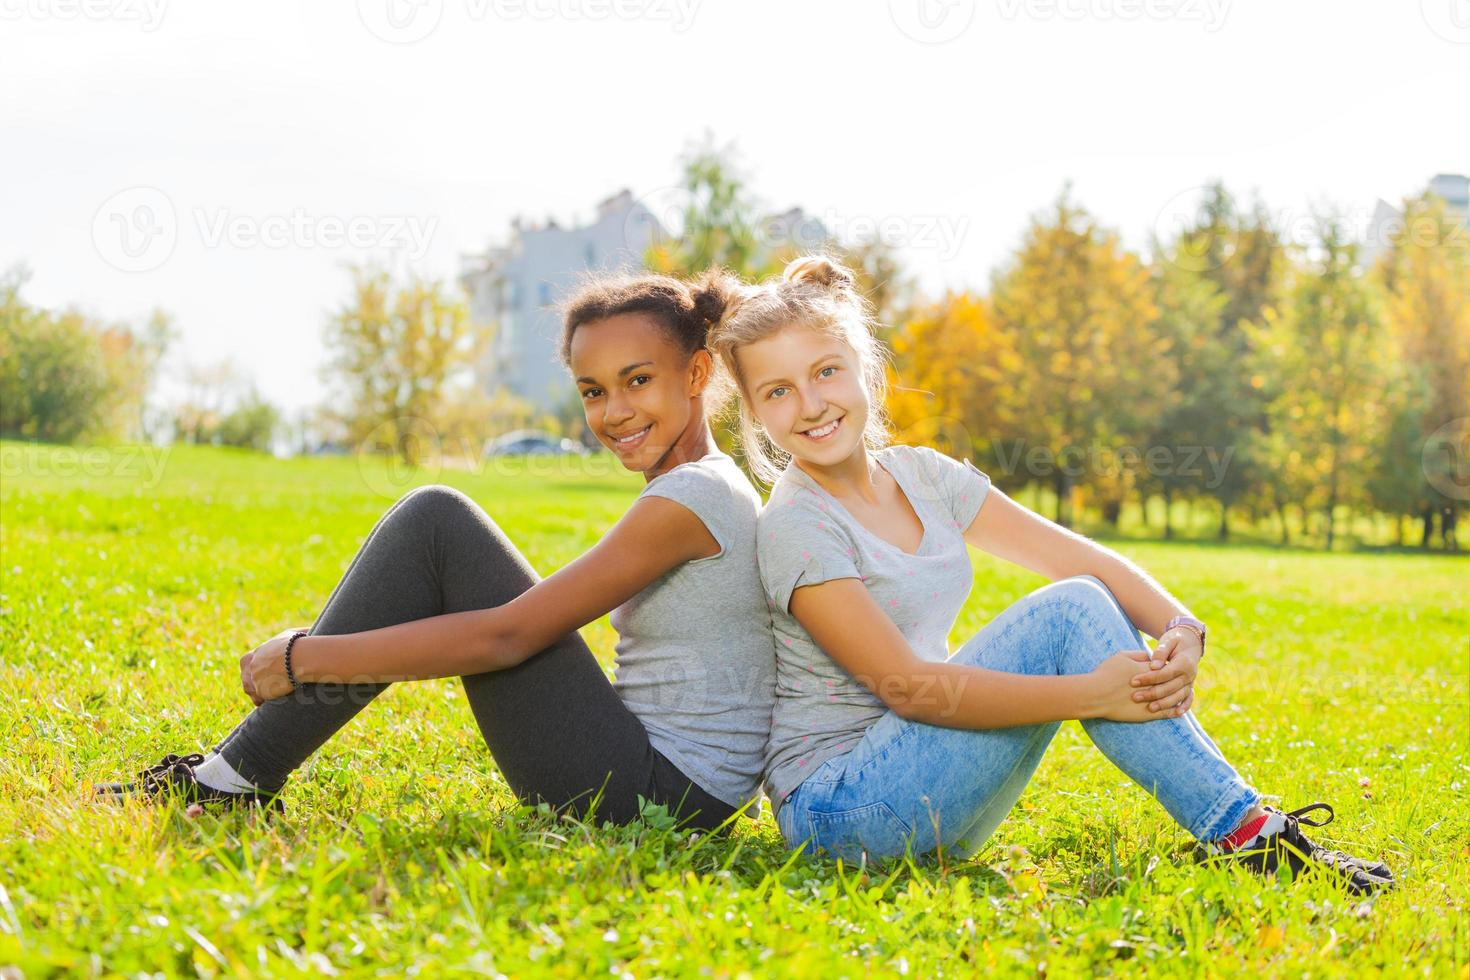 African and blond girl sitting together on grass photo